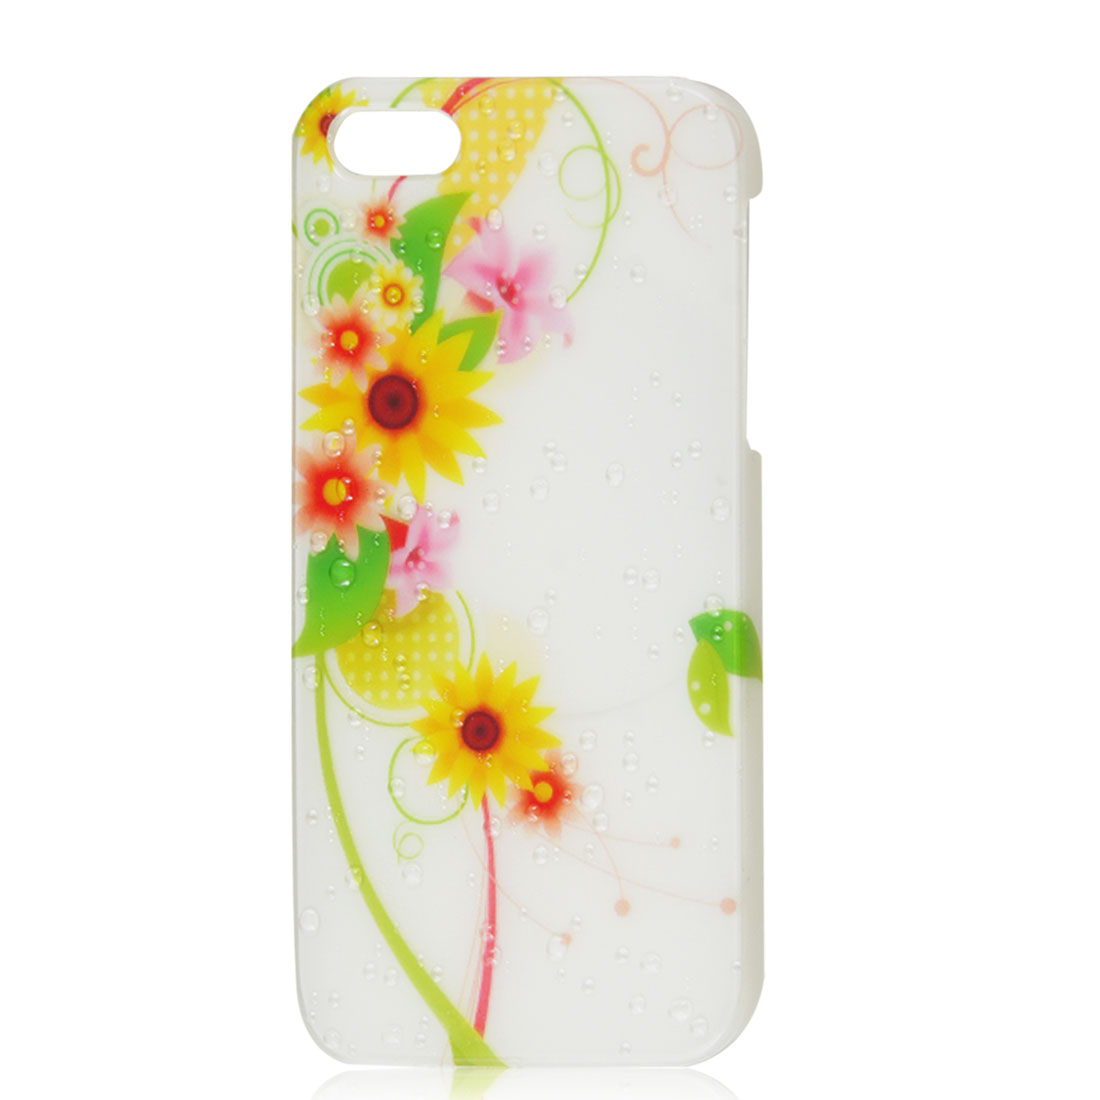 Sunflower 3D Water Drop Droplet Hard Back Case Skin Cover for iPhone 5 5G